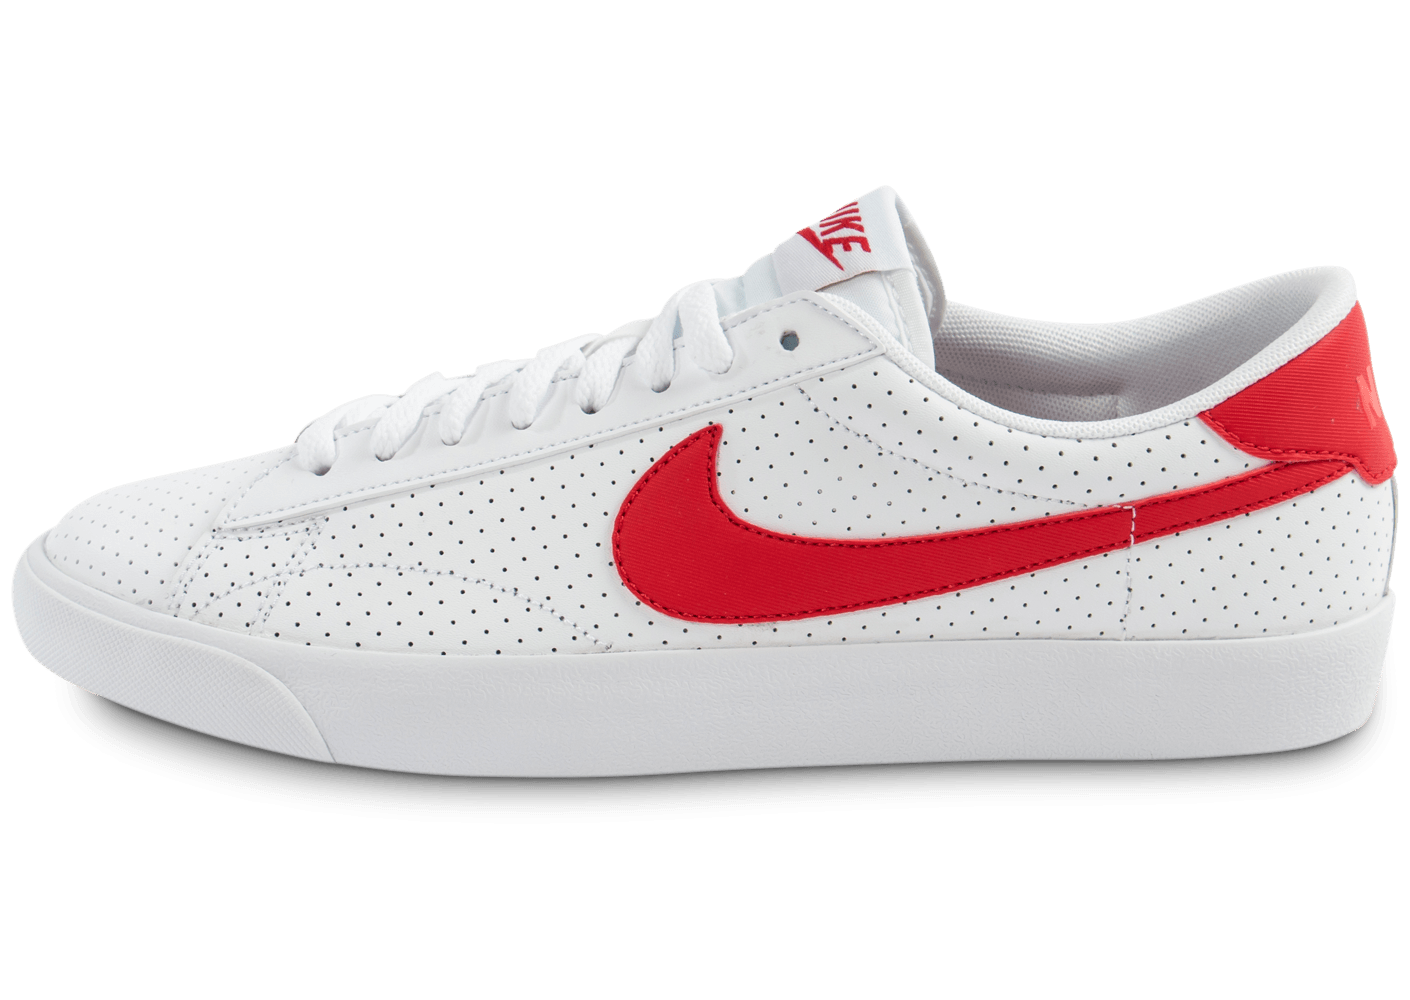 Chaussure Nike Rouge Et Blanche